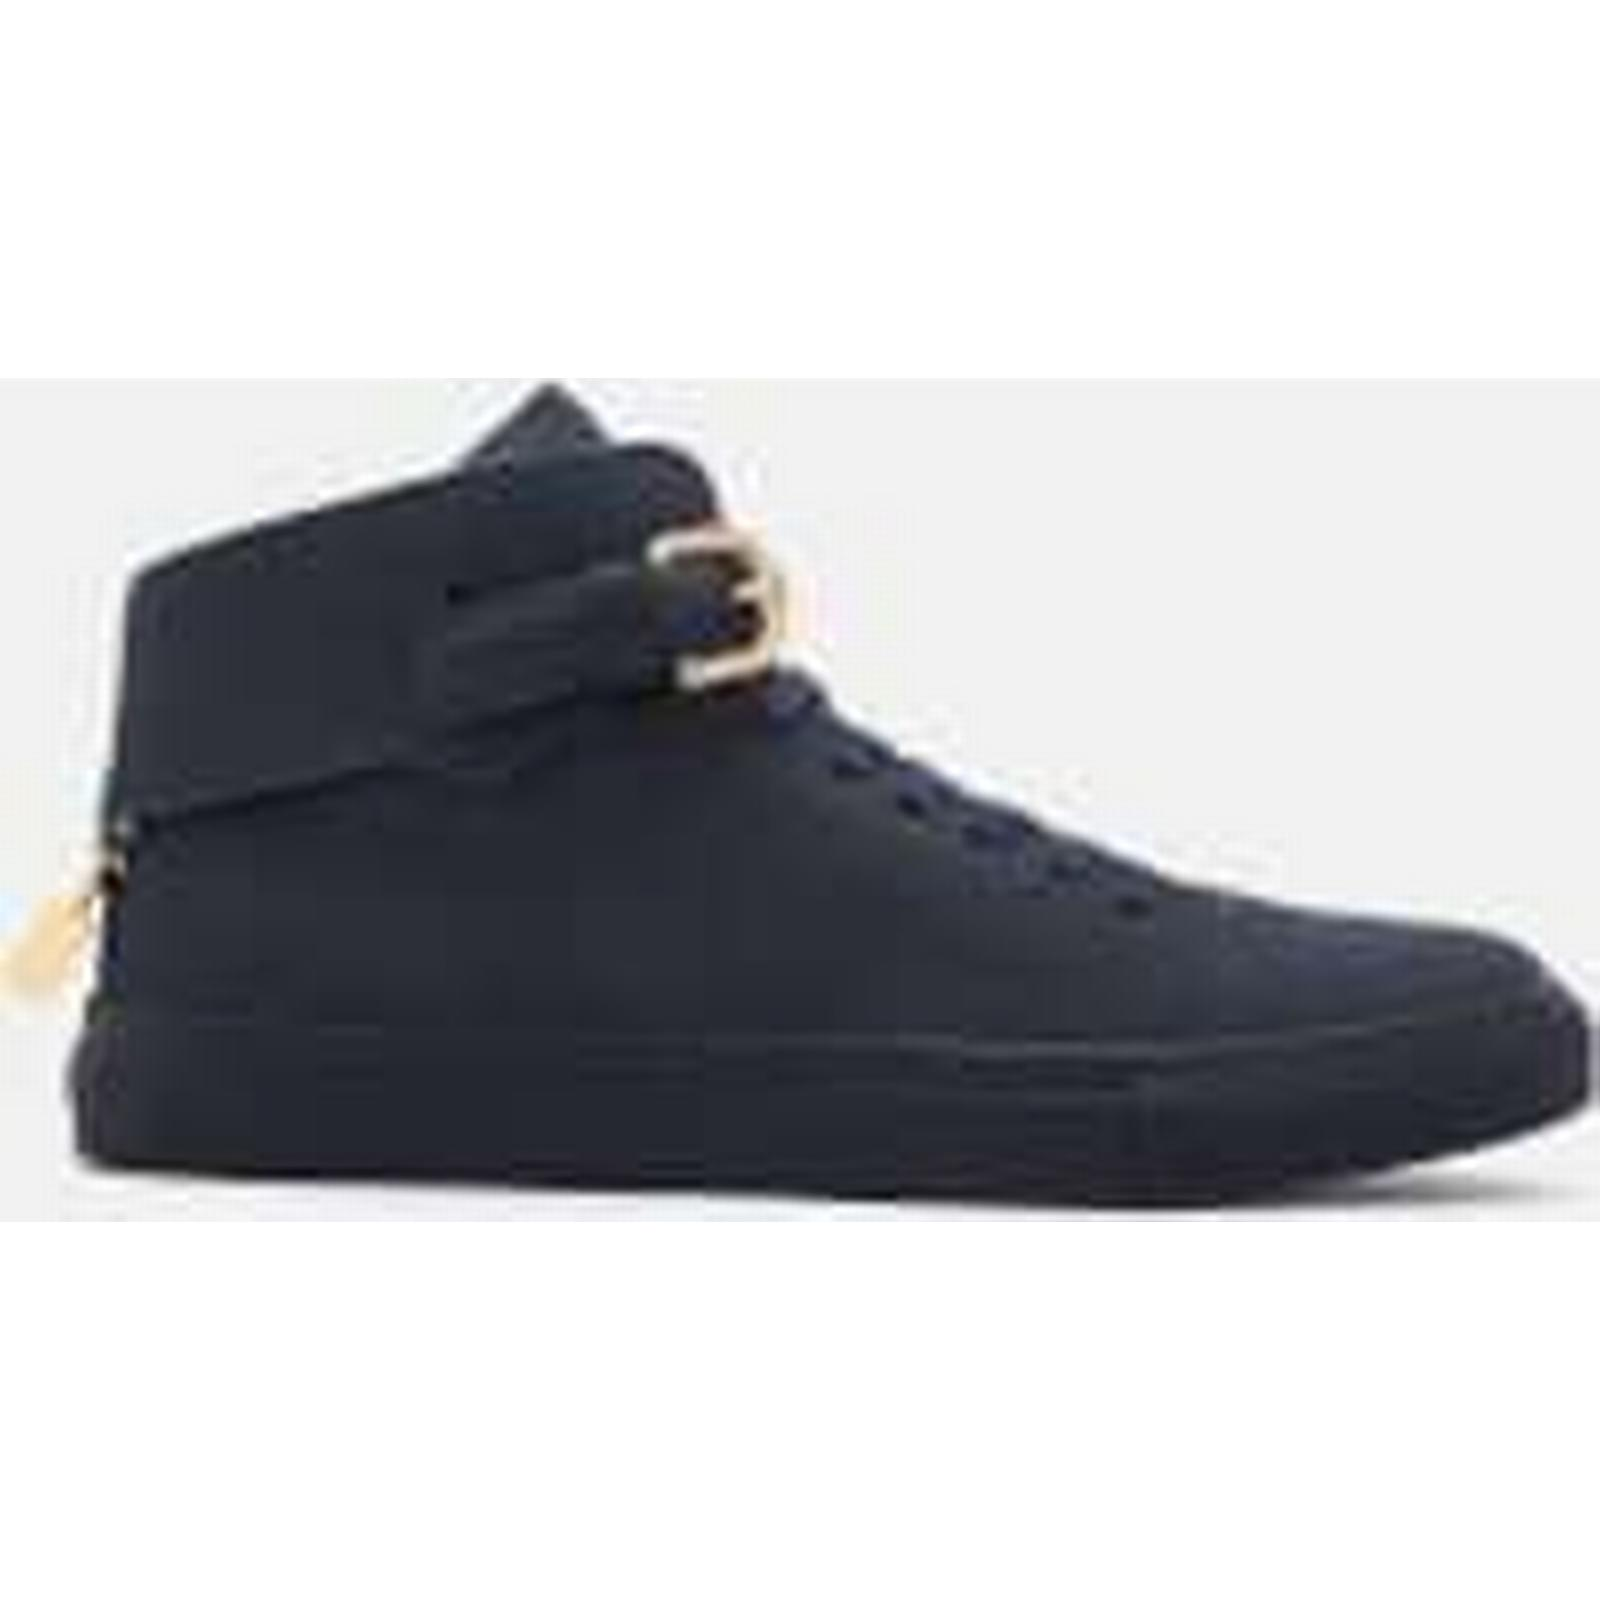 Buscemi Men's 100MM Buckle High Top Trainers - - Ocean - UK 9 - - Blue 6a3a6f